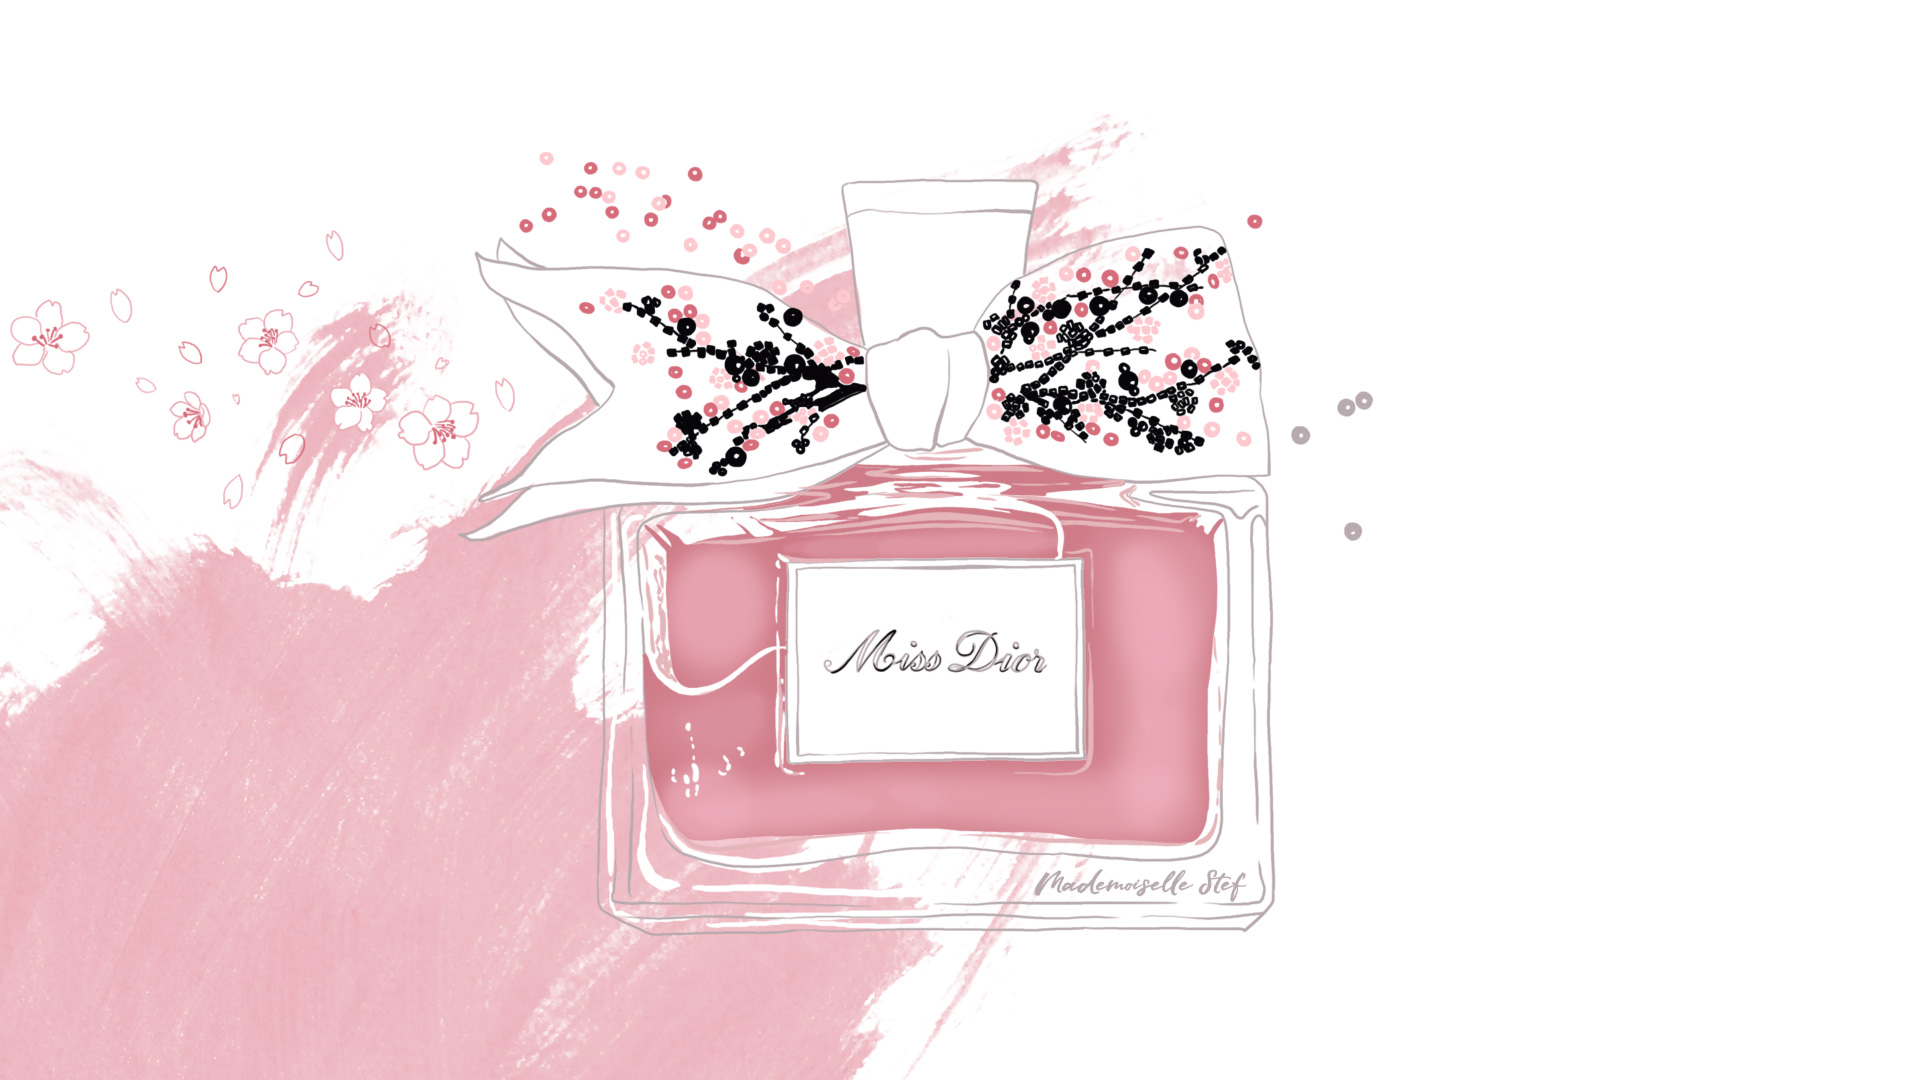 Wallpaper-miss-dior-mademoiselle-stef